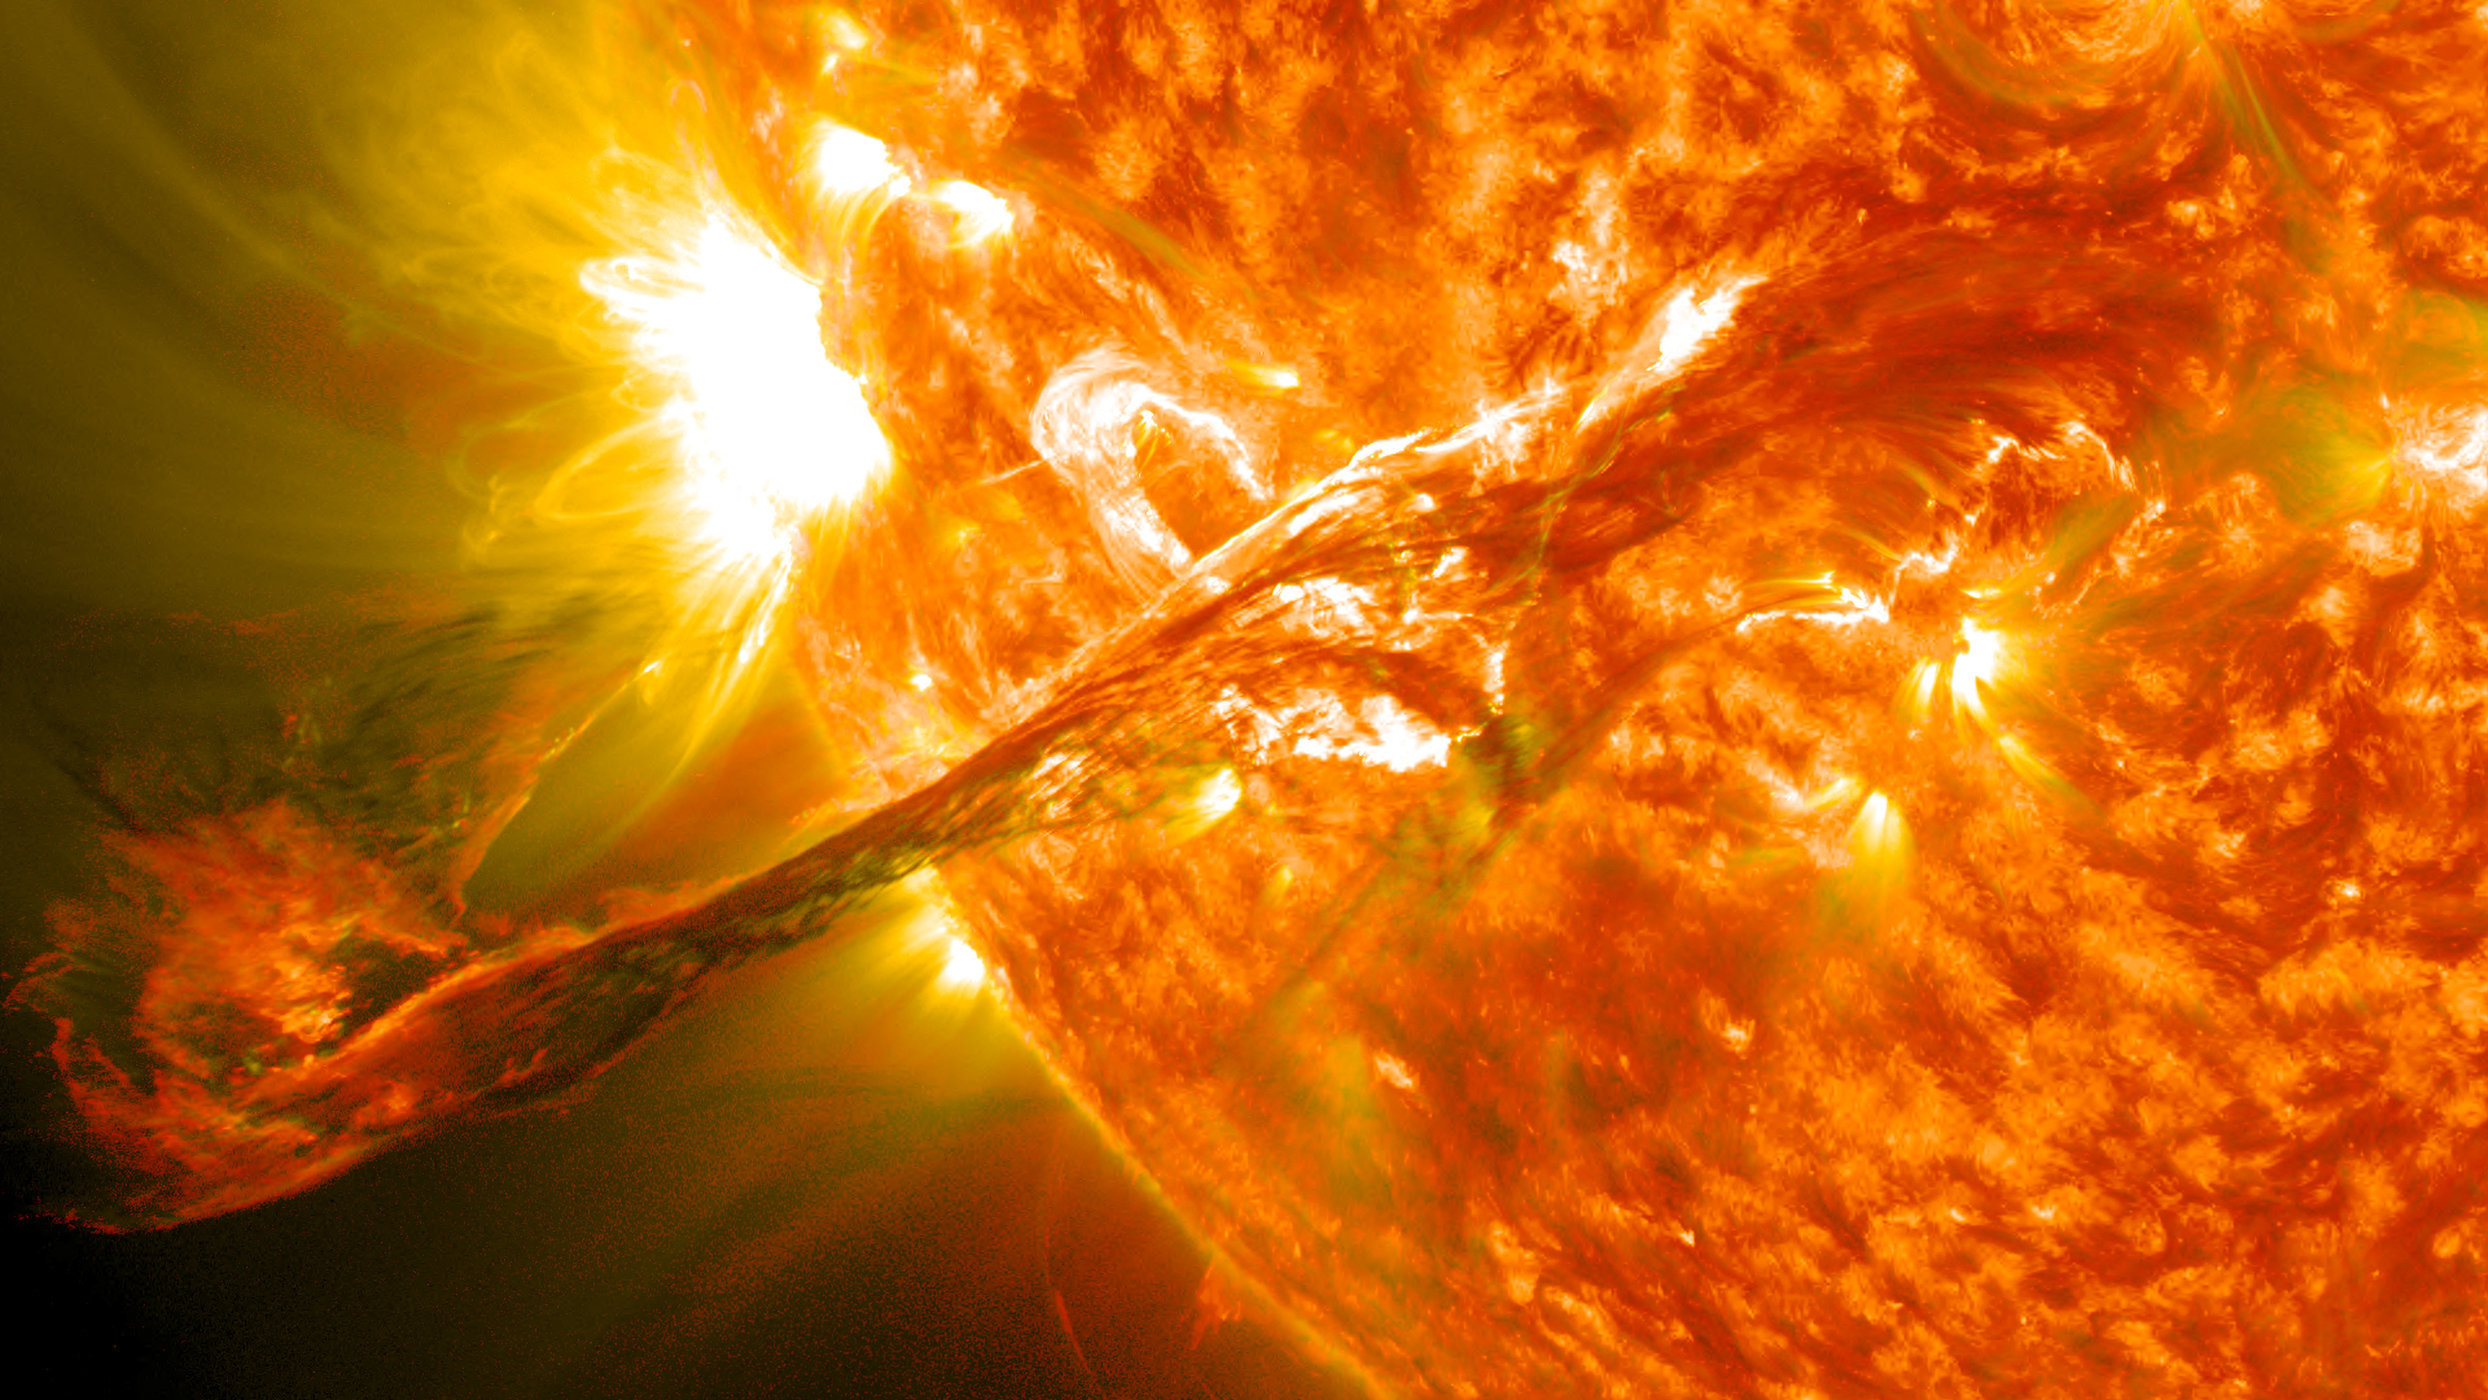 Giant solar tornadoes put researchers in a spin